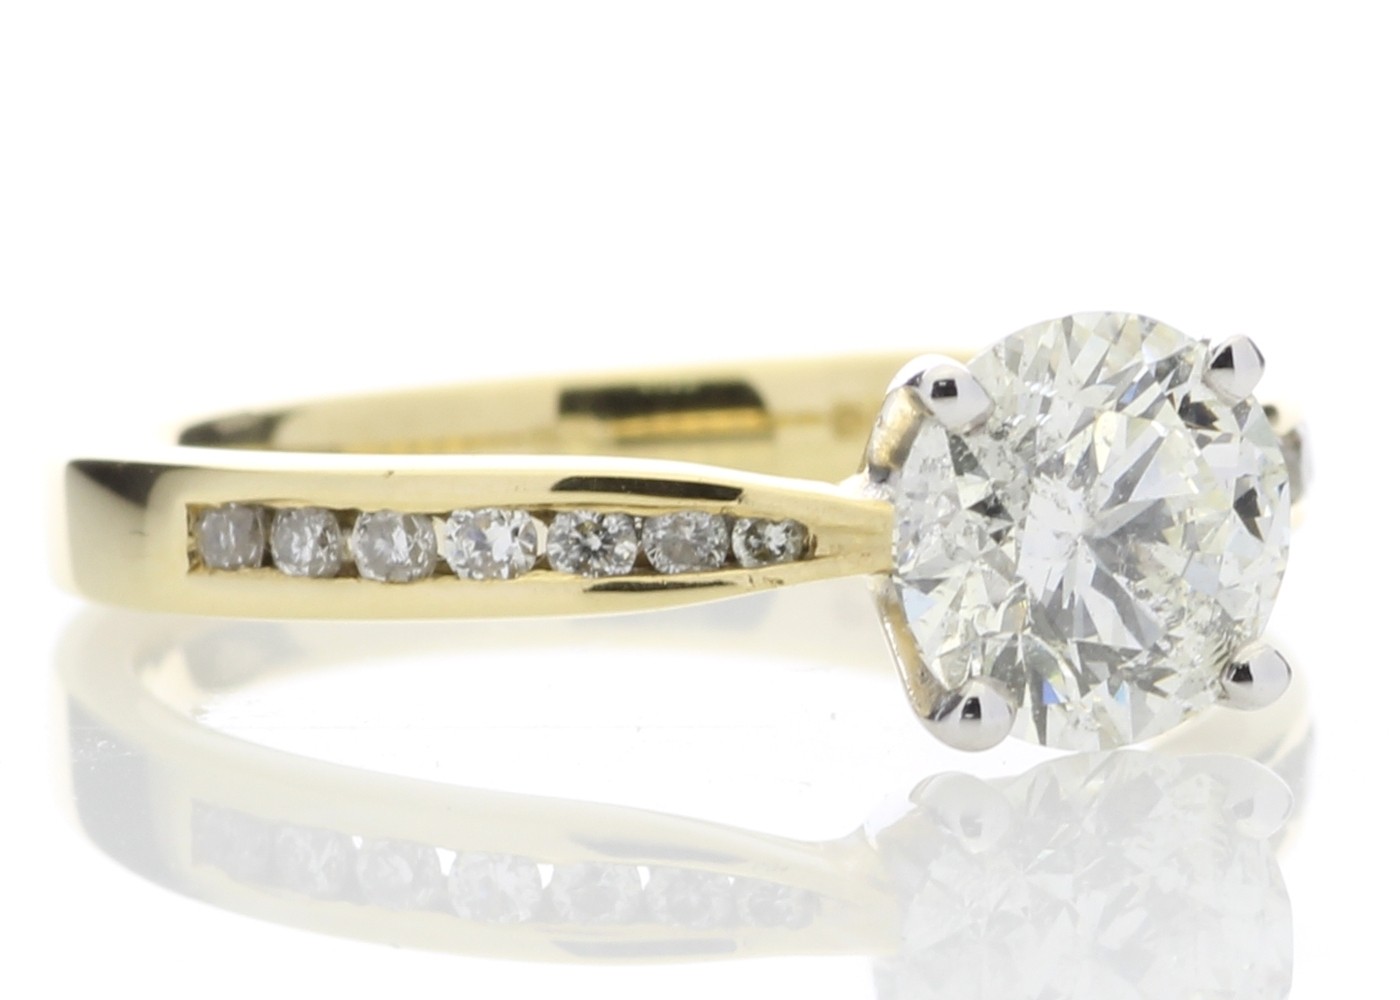 18ct Yellow Gold Diamond Ring With Stone Set Shoulders 1.28 Carats - Image 4 of 5